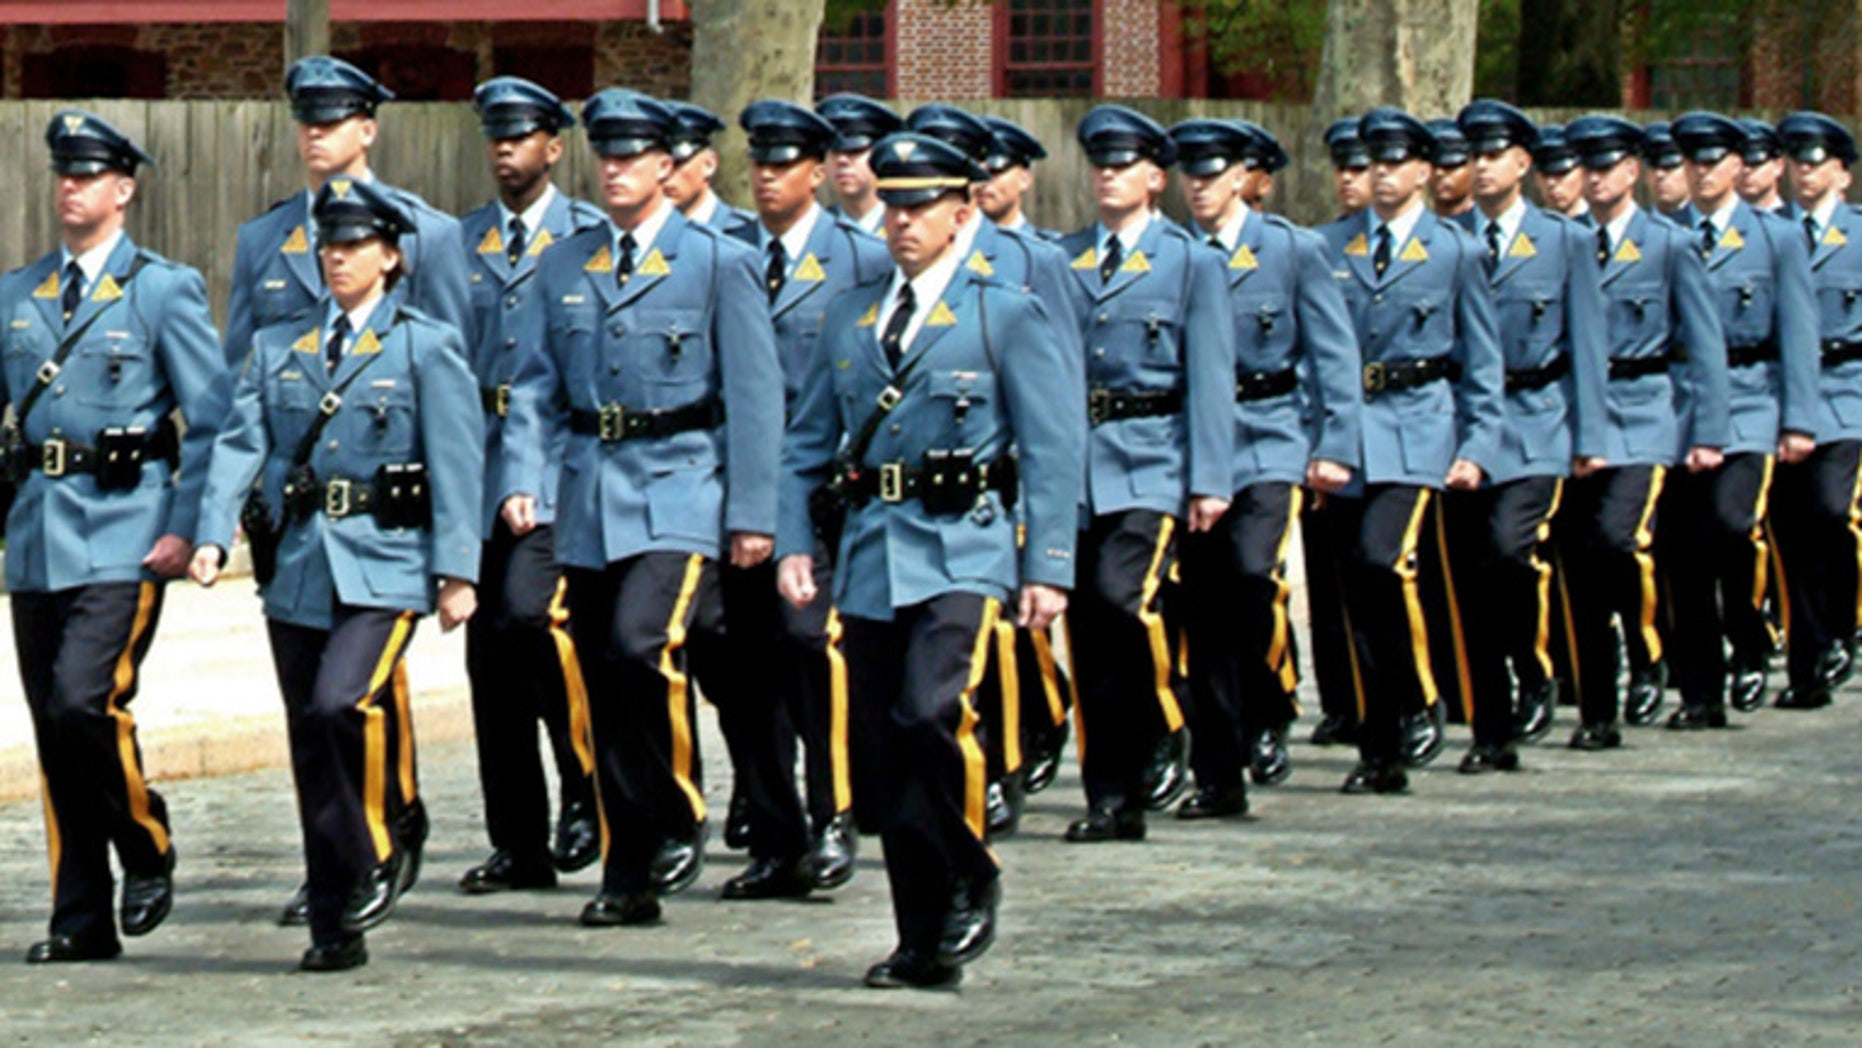 A new lawsuit alleges the State Police was pressured into accepting more racially diverse candidates for the police academy.